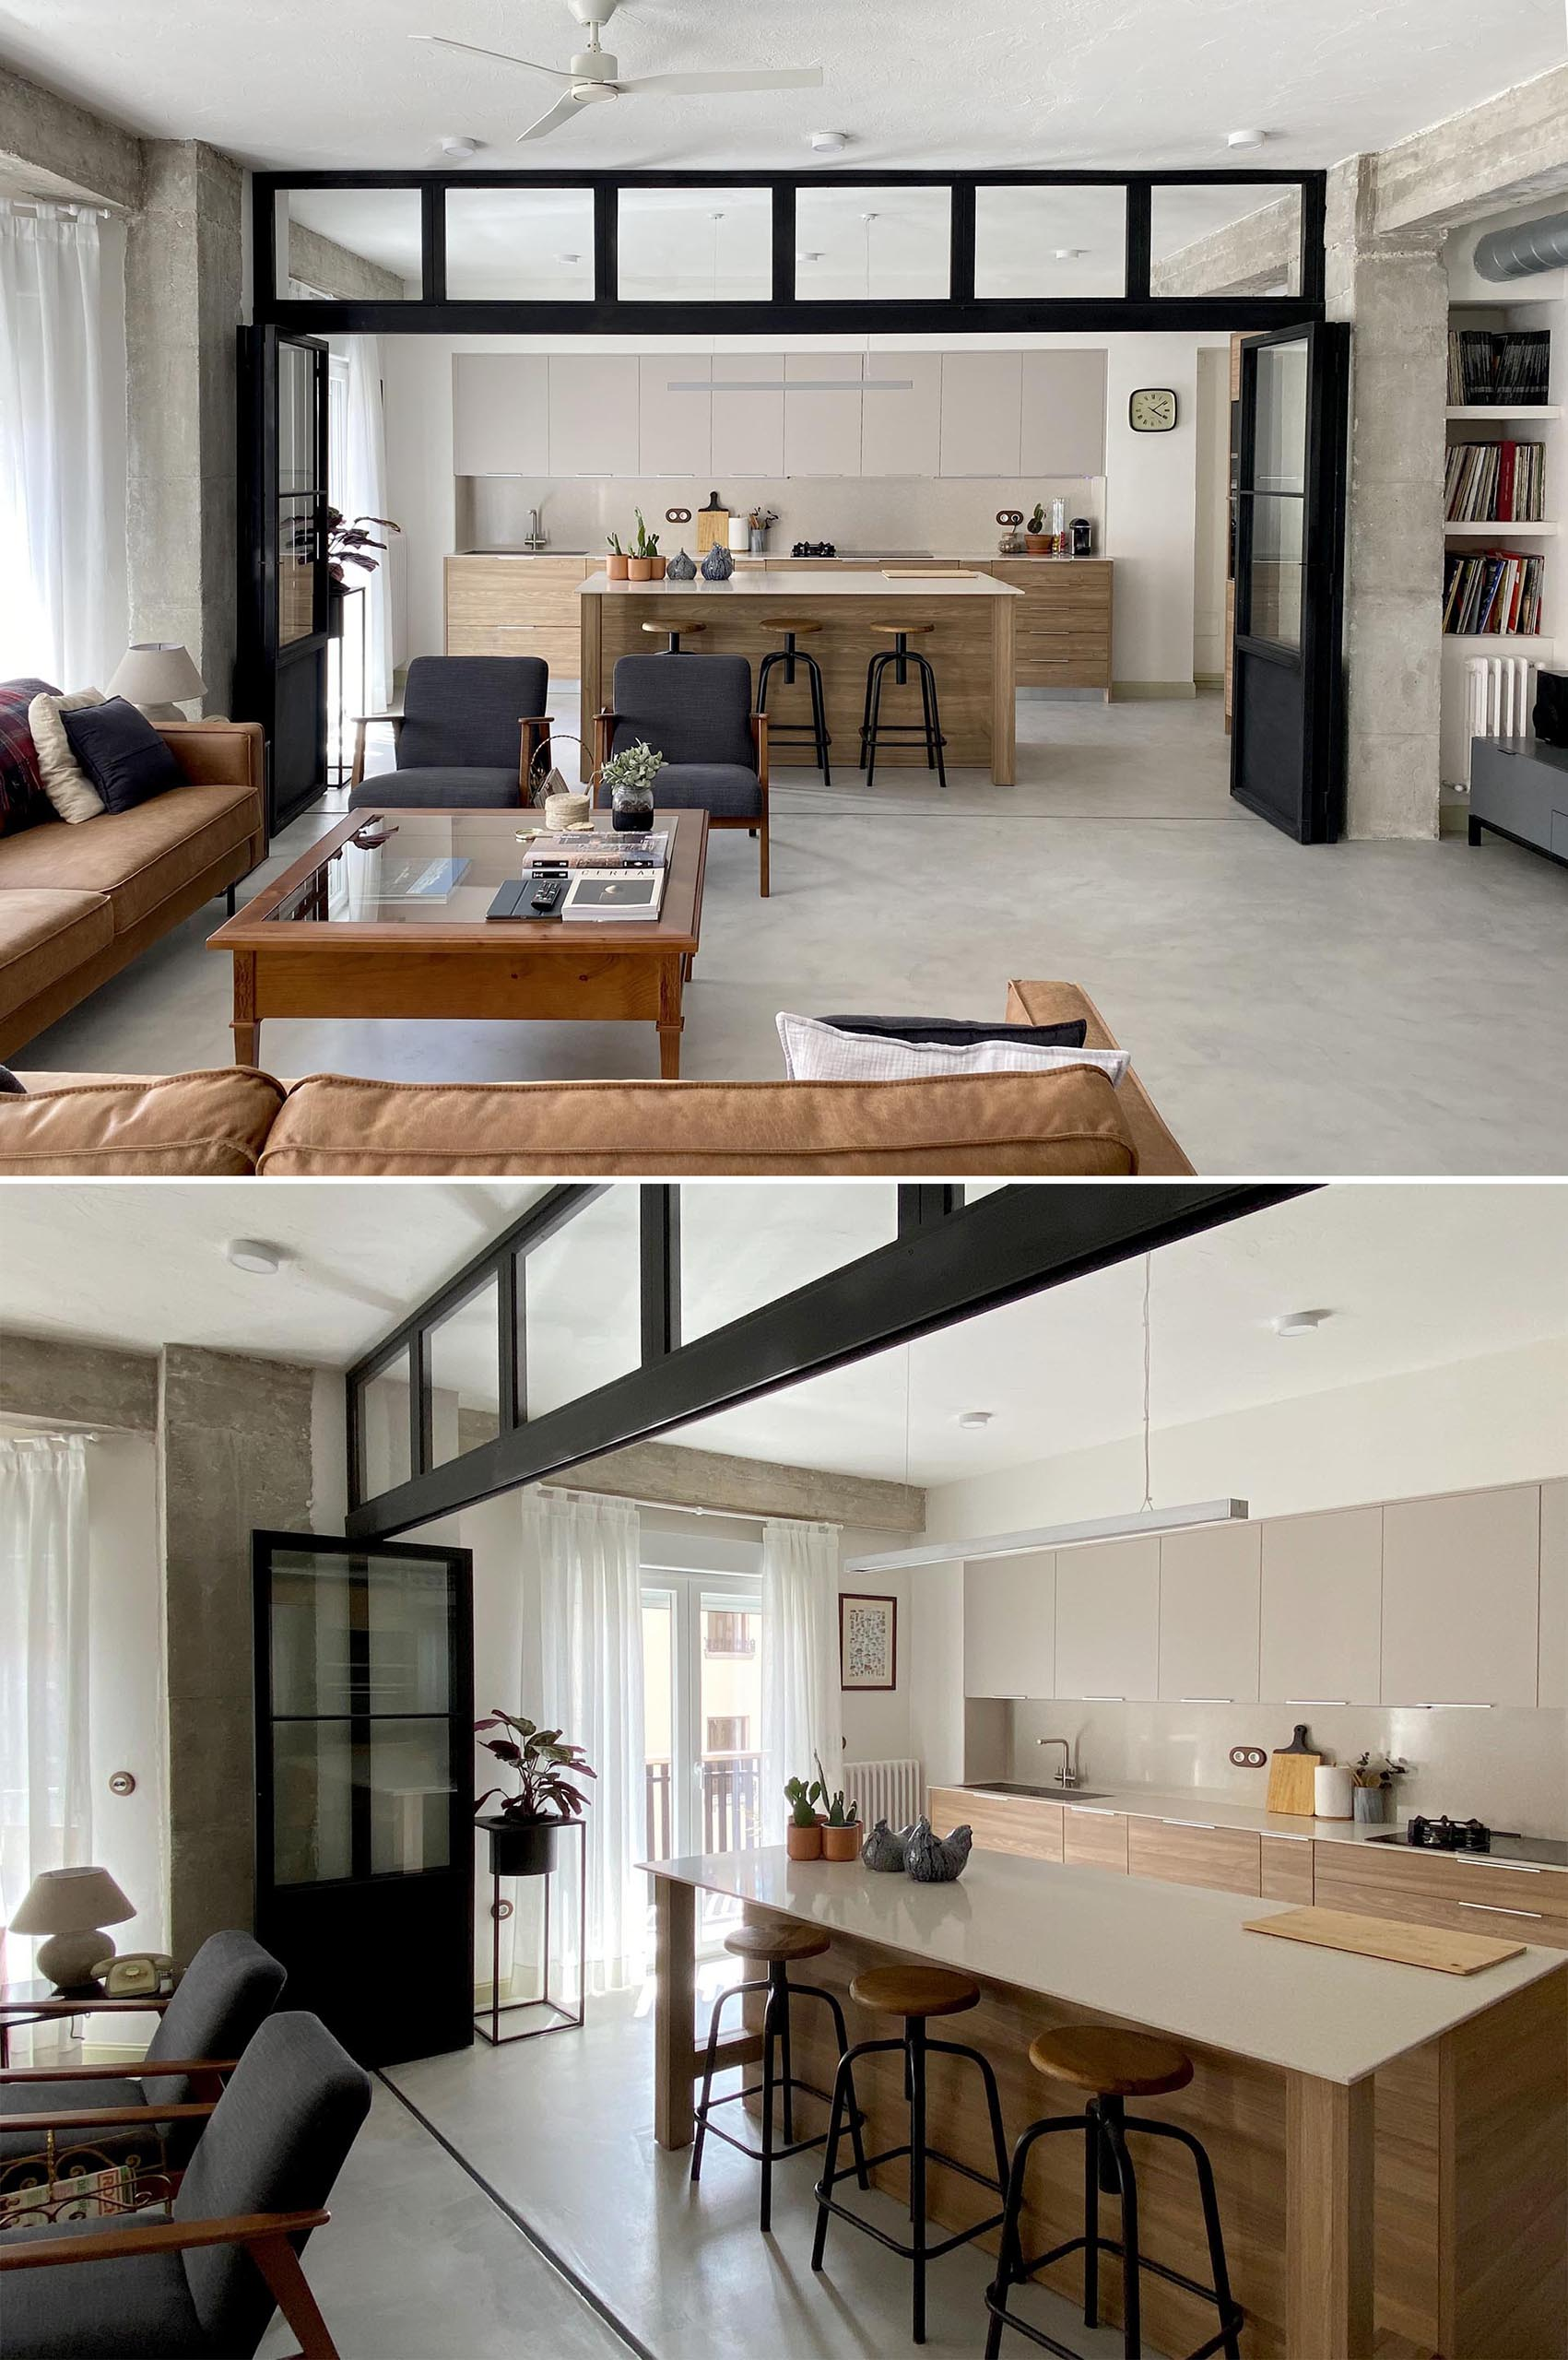 The folding black-framed glass doors sit below a row of windows, and when open or closed, the doors allow the natural light from the windows in the the exterior wall to travel throughout the interior.